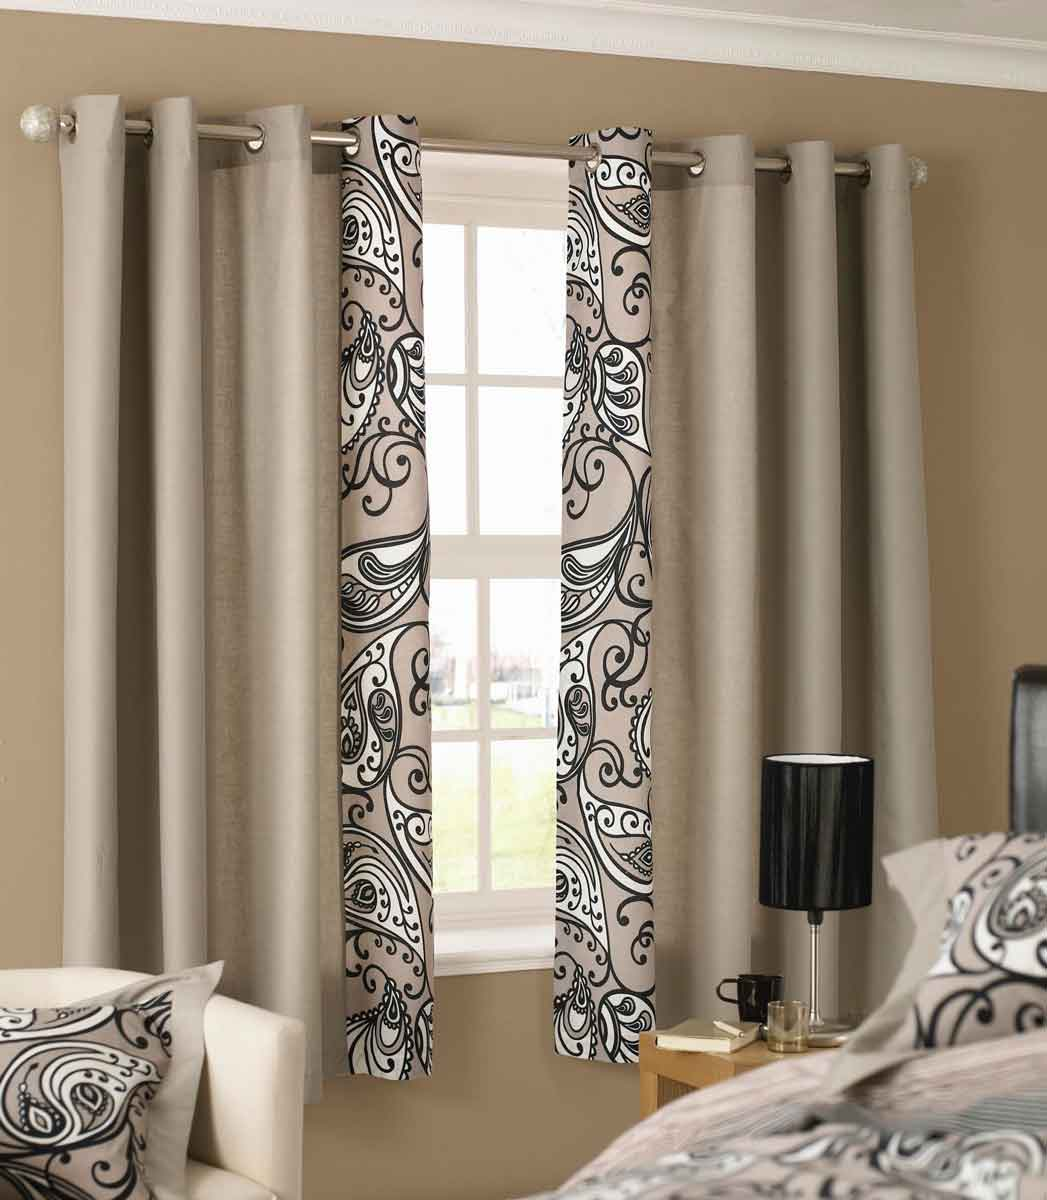 Image small bathroom window curtain ideas beautiful for Bedroom curtain designs photos